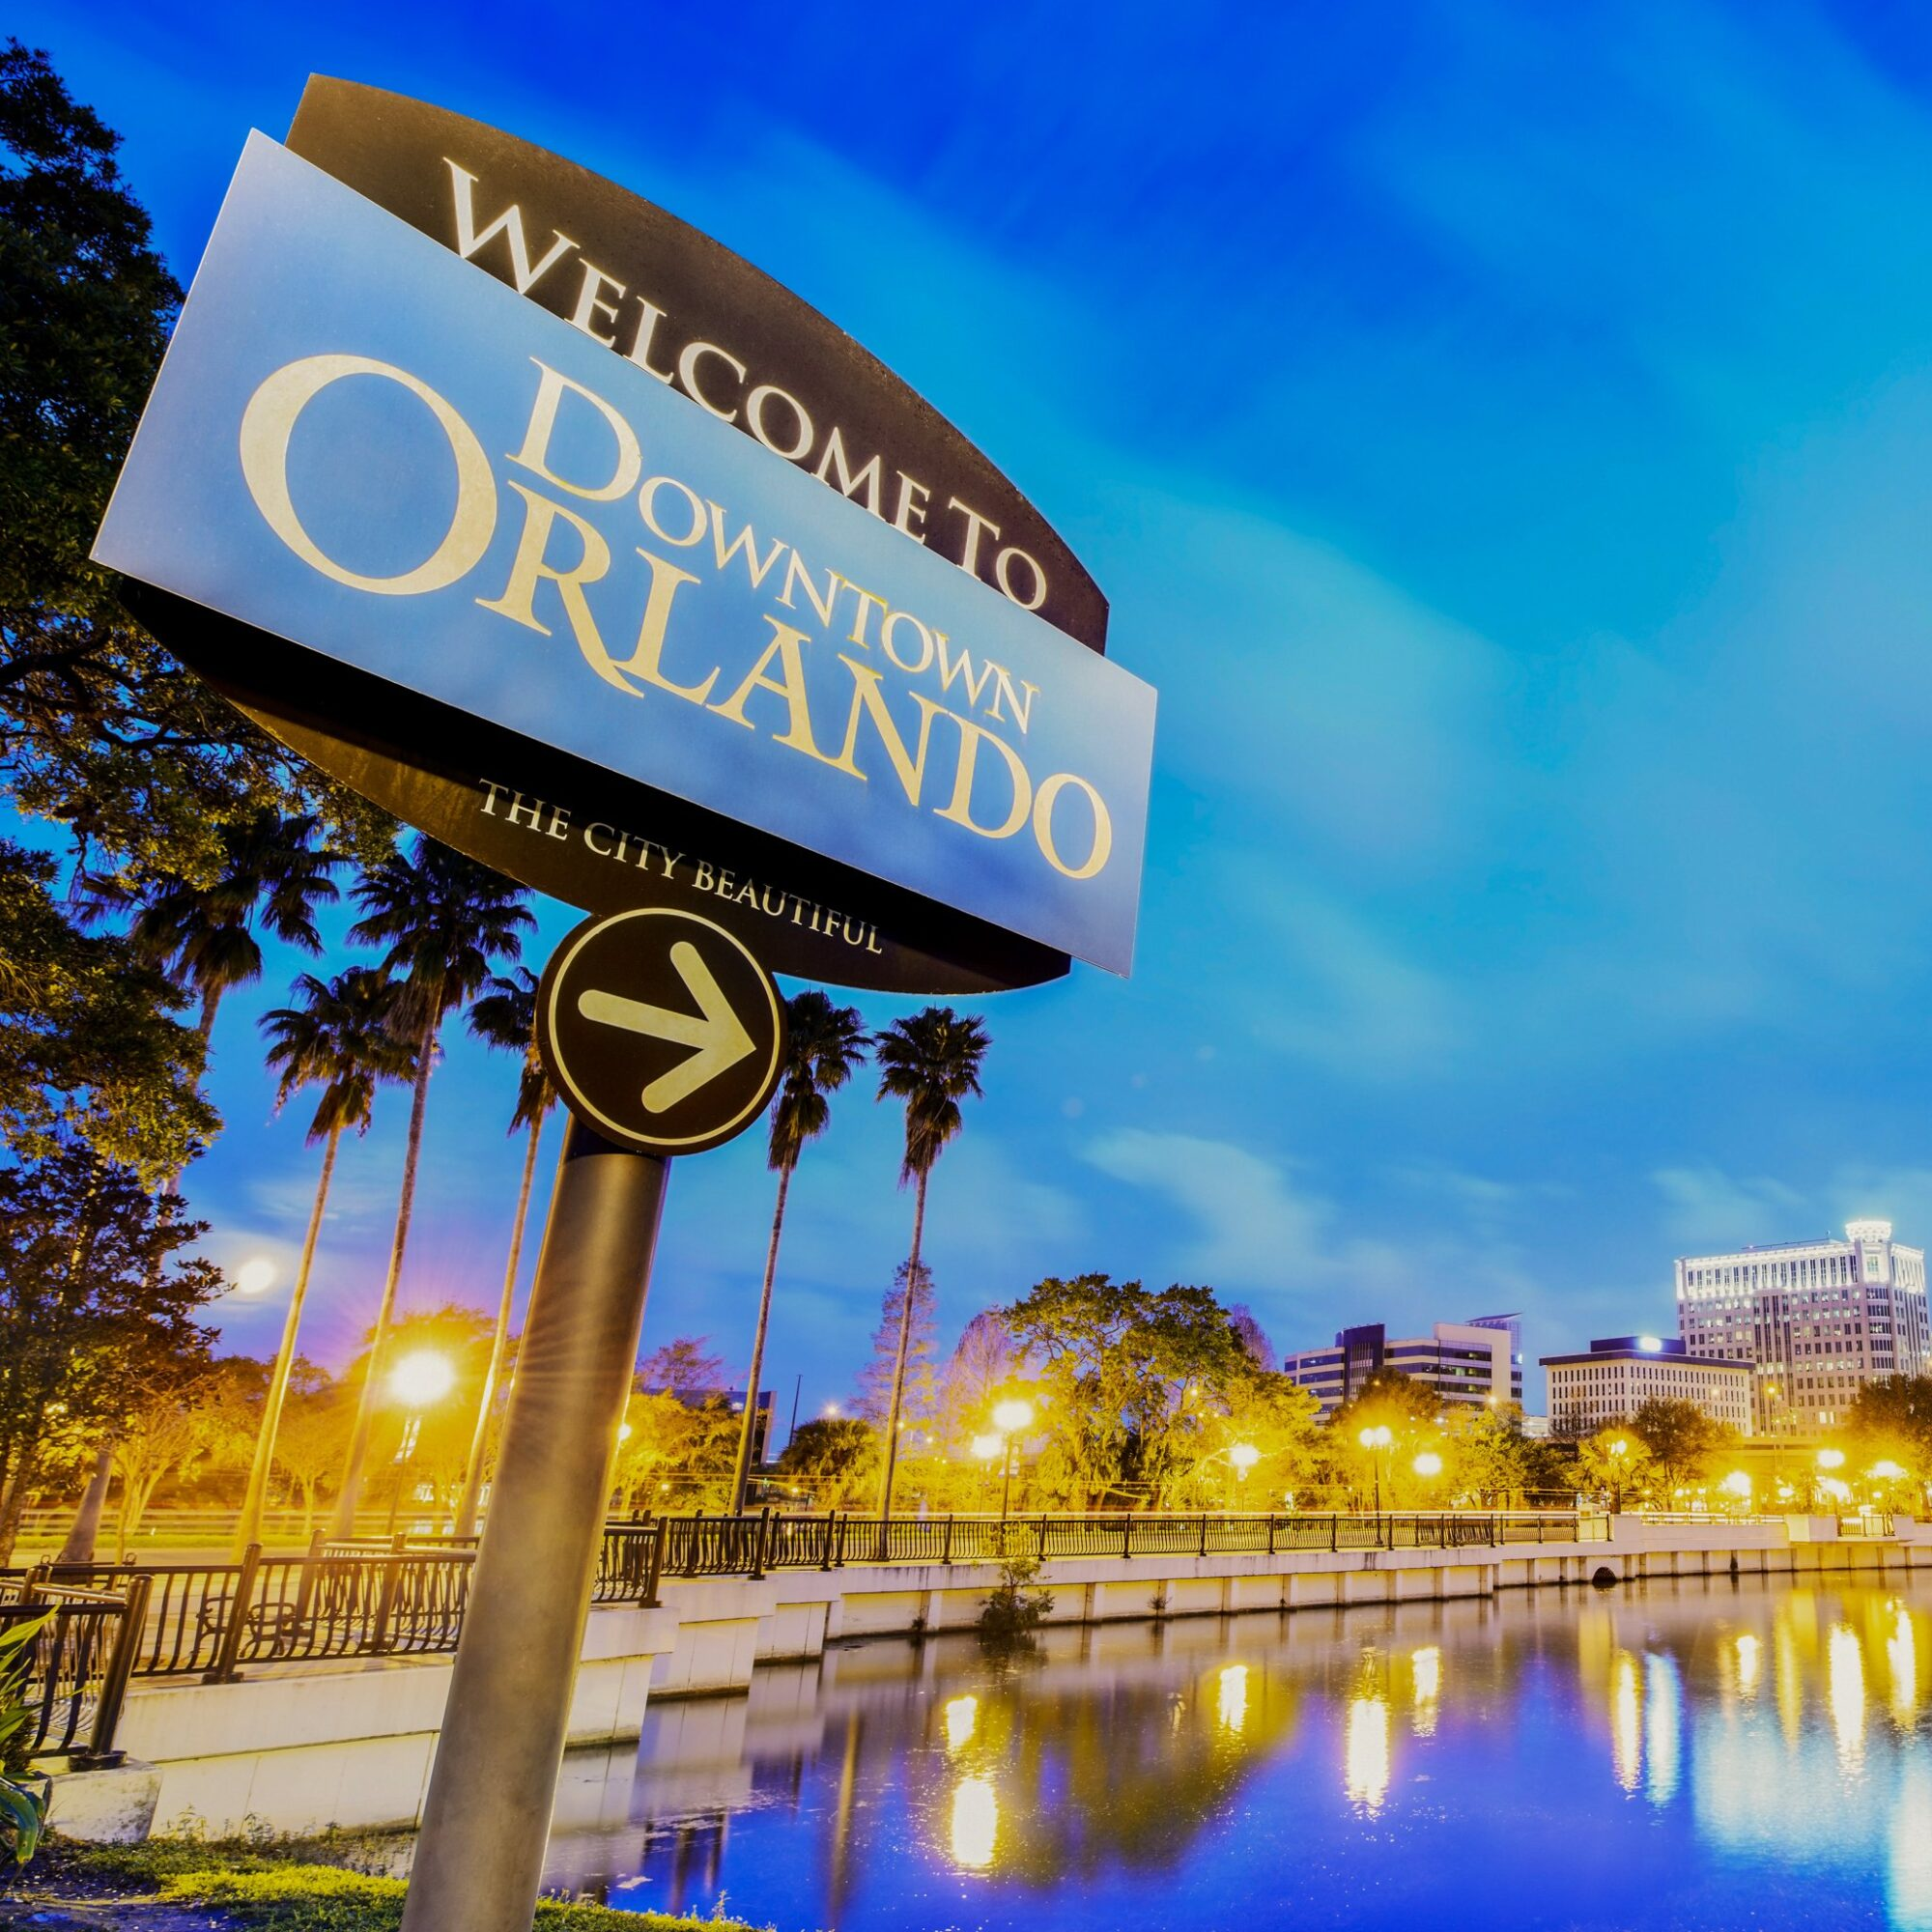 A sign pointing to downtown Orlando, Florida.